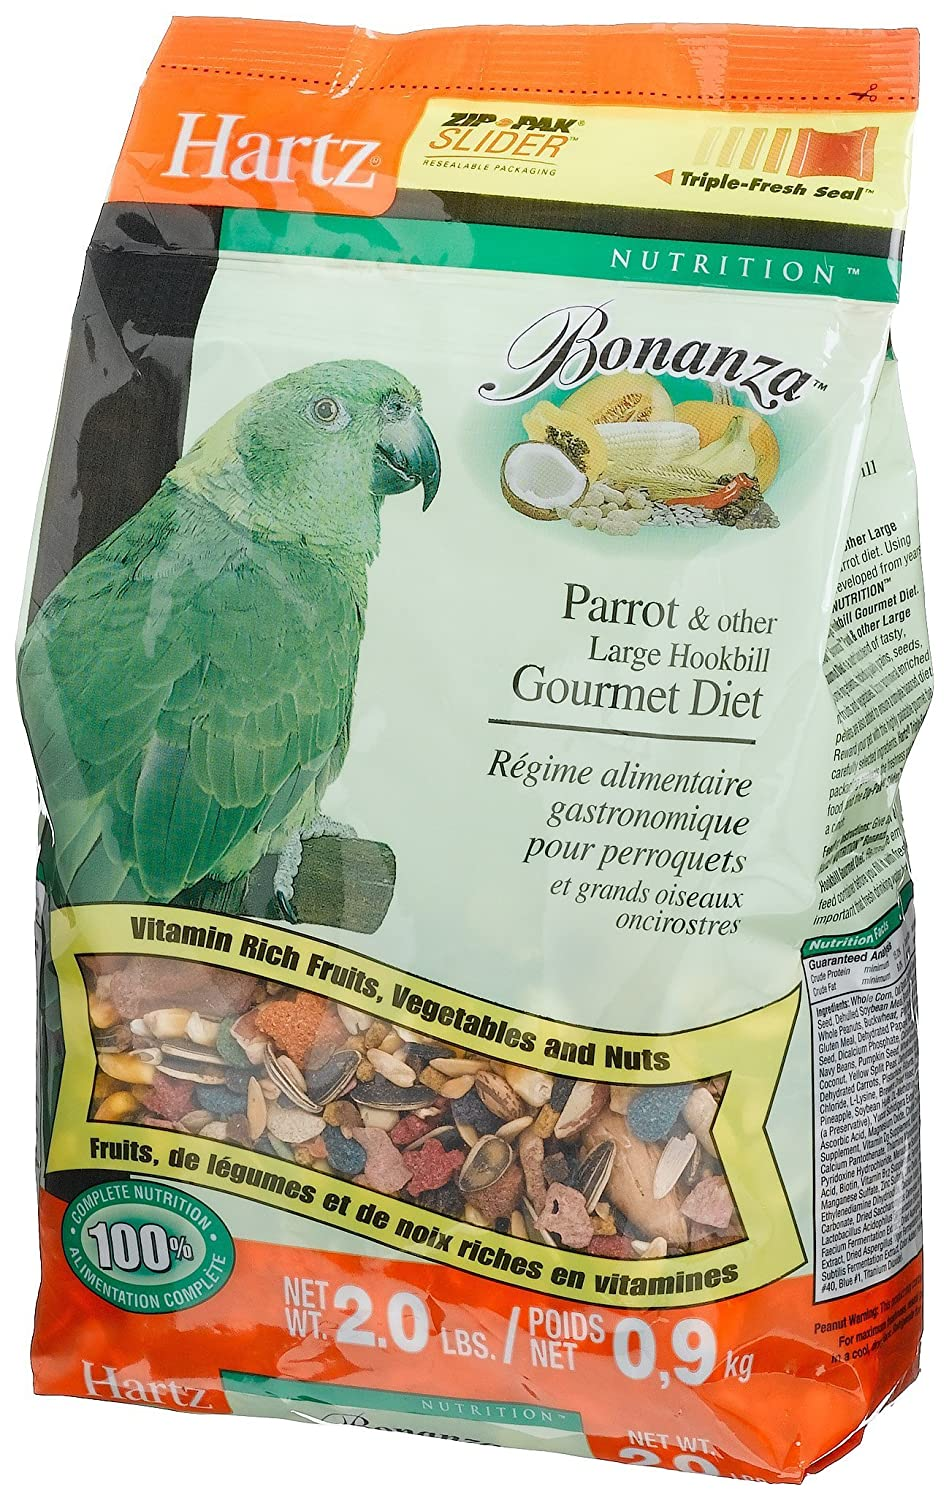 Hartz Bonanza Parrot Gourmet Diet 2 Pound Supply